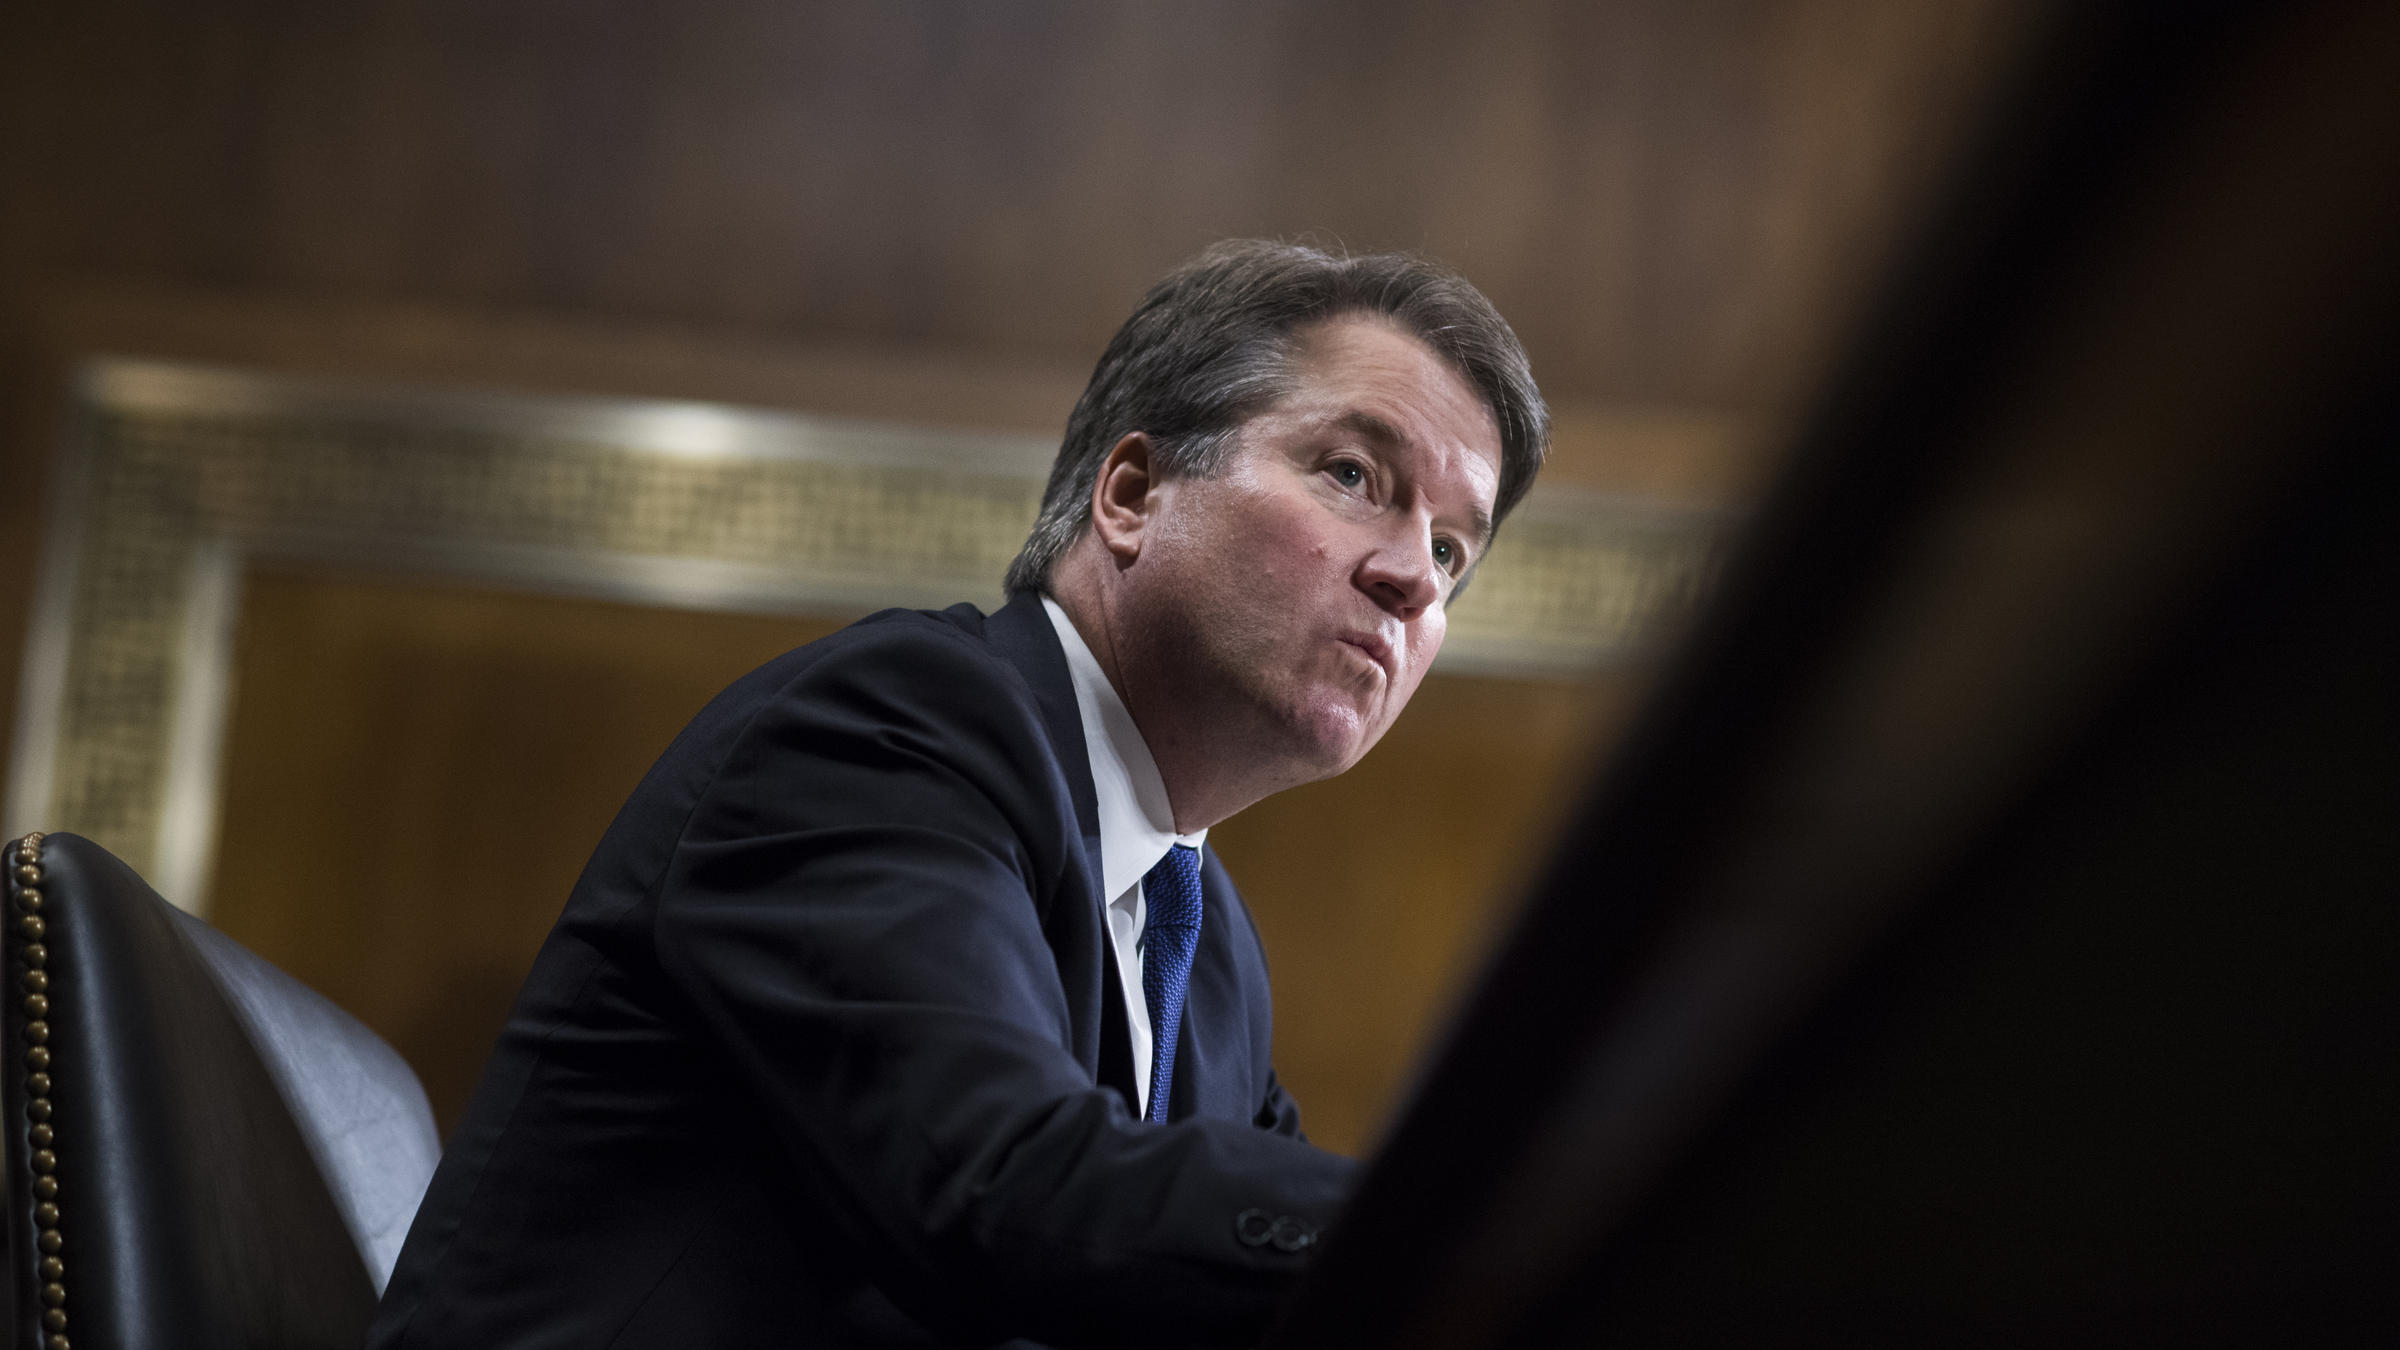 3747fbd178d0 Judge Brett Kavanaugh testifies before the Senate Judiciary Committee on  Thursday.